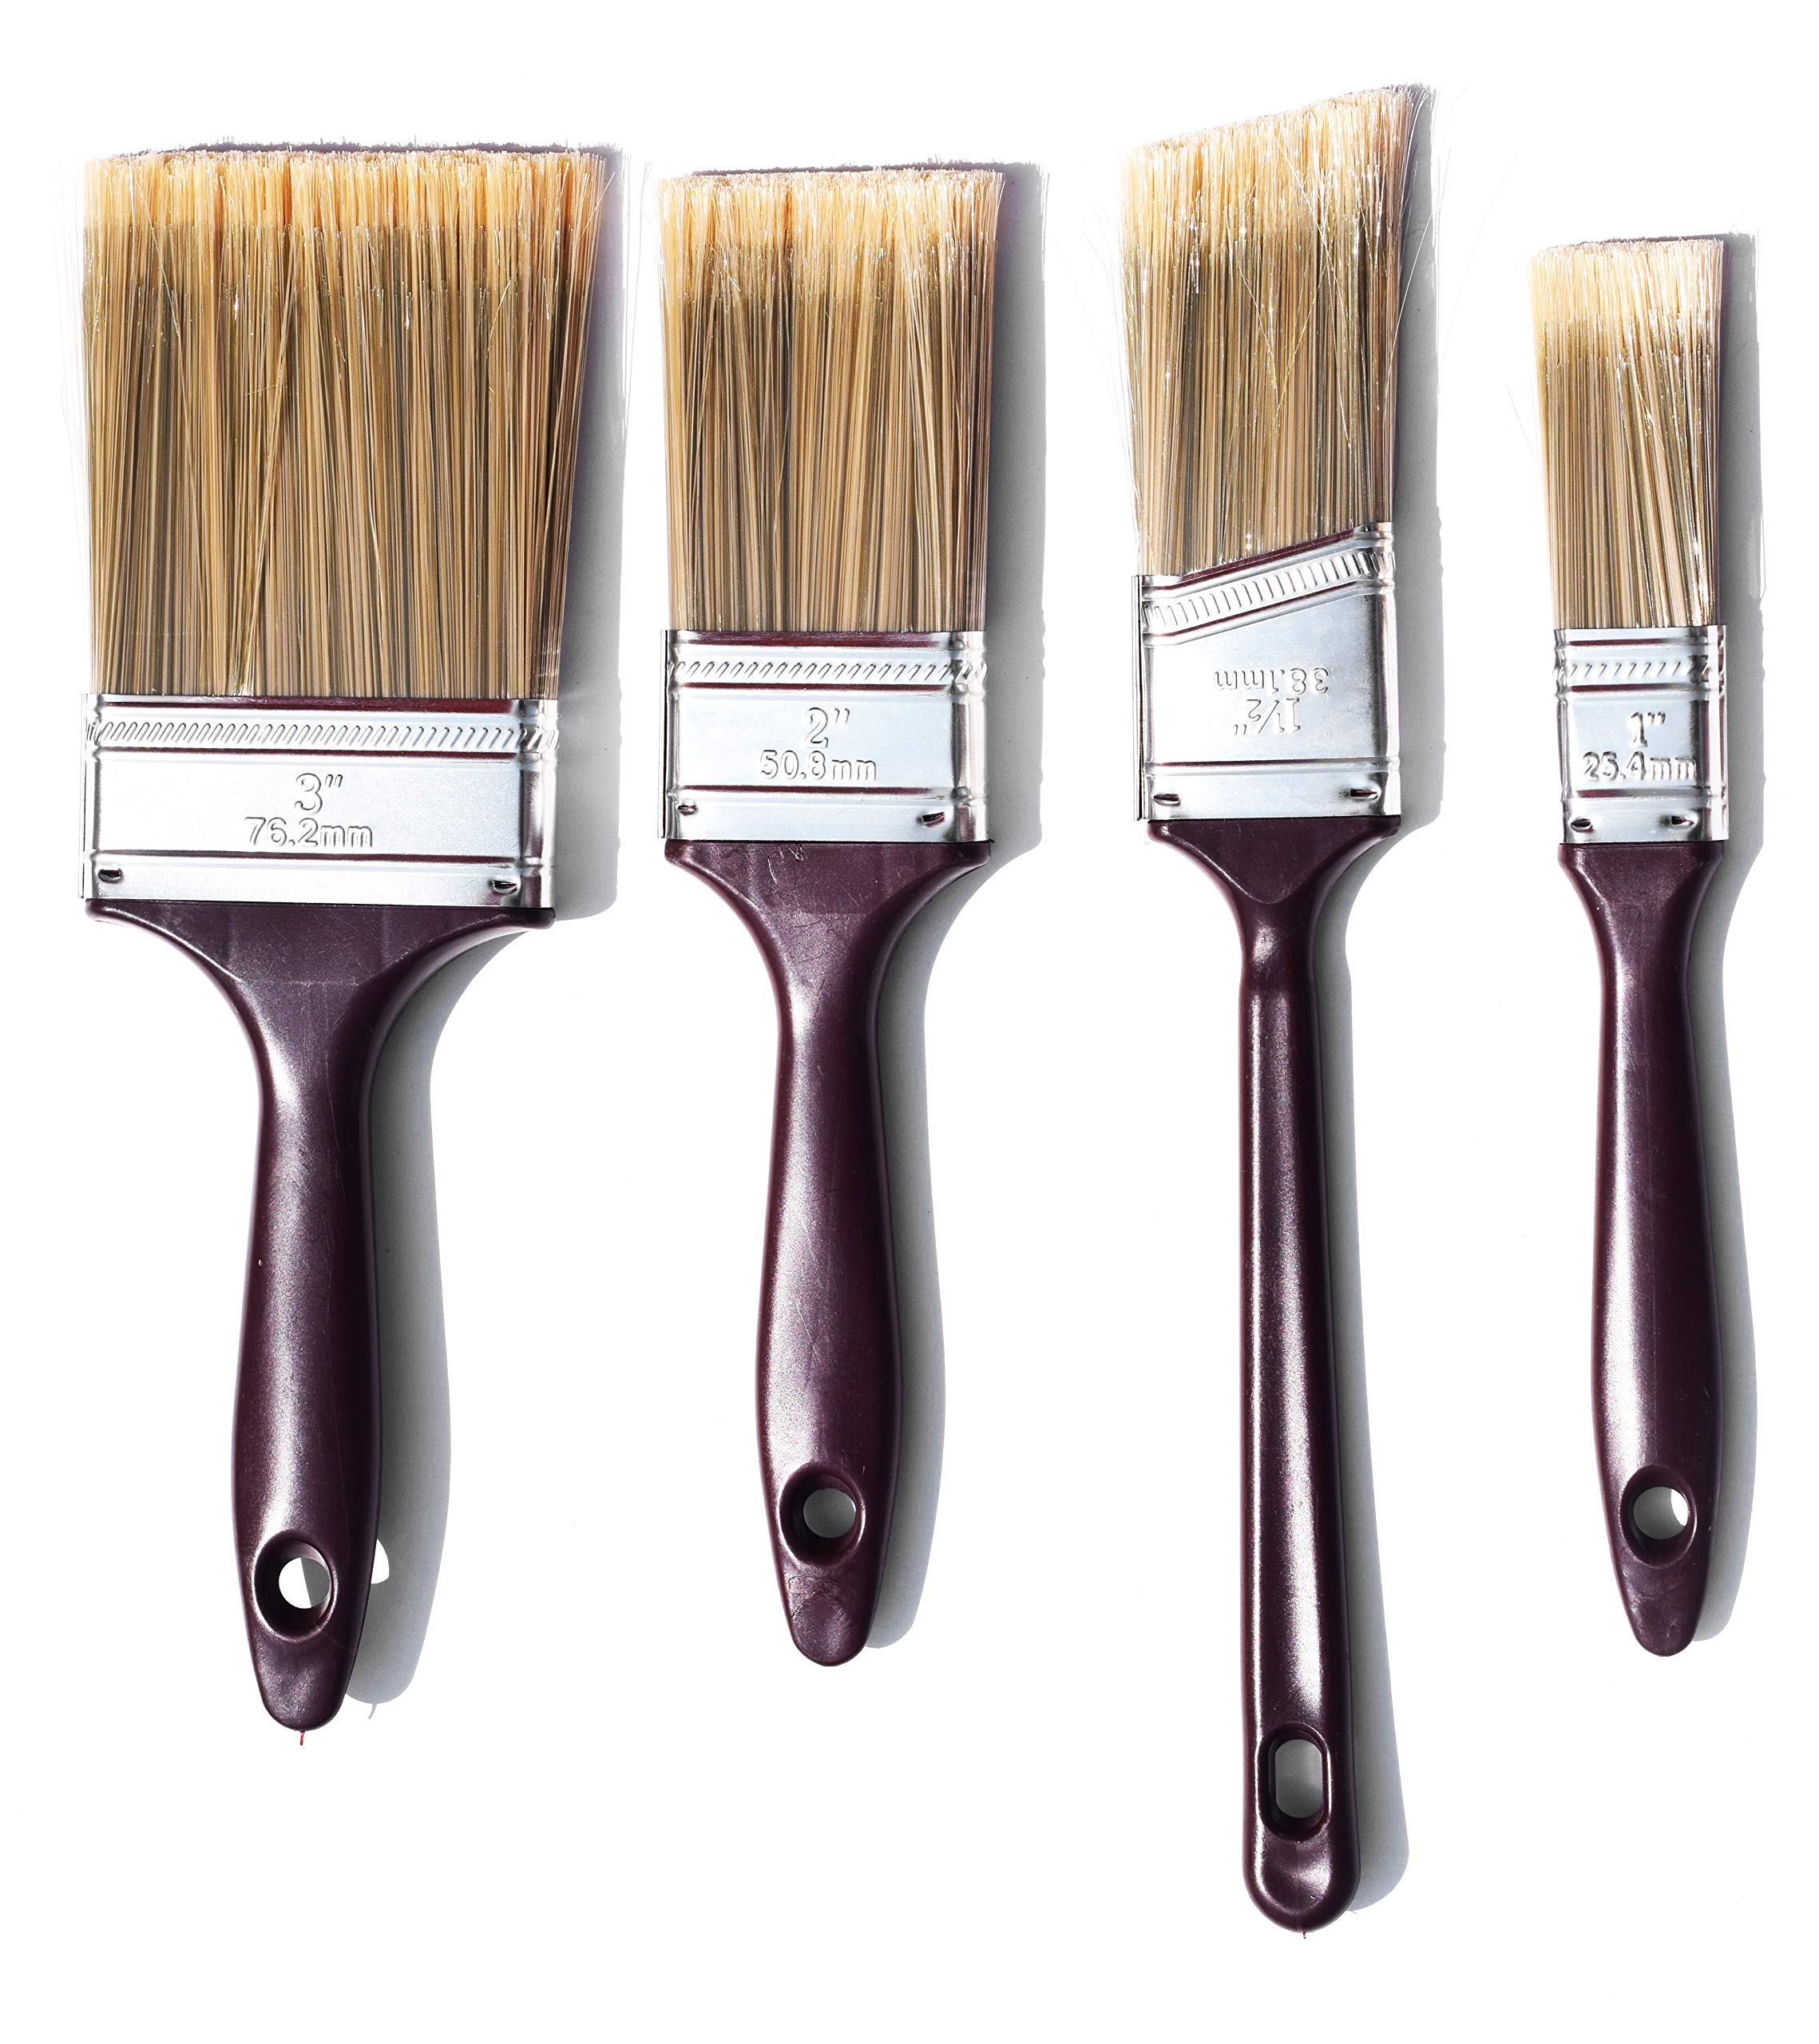 The Shop 1220 flat Paint brushes and cutting brush 4 pack set for acrylic, chalk and oil paints- great for wall and canvas, can be use by artist and painters. Washable